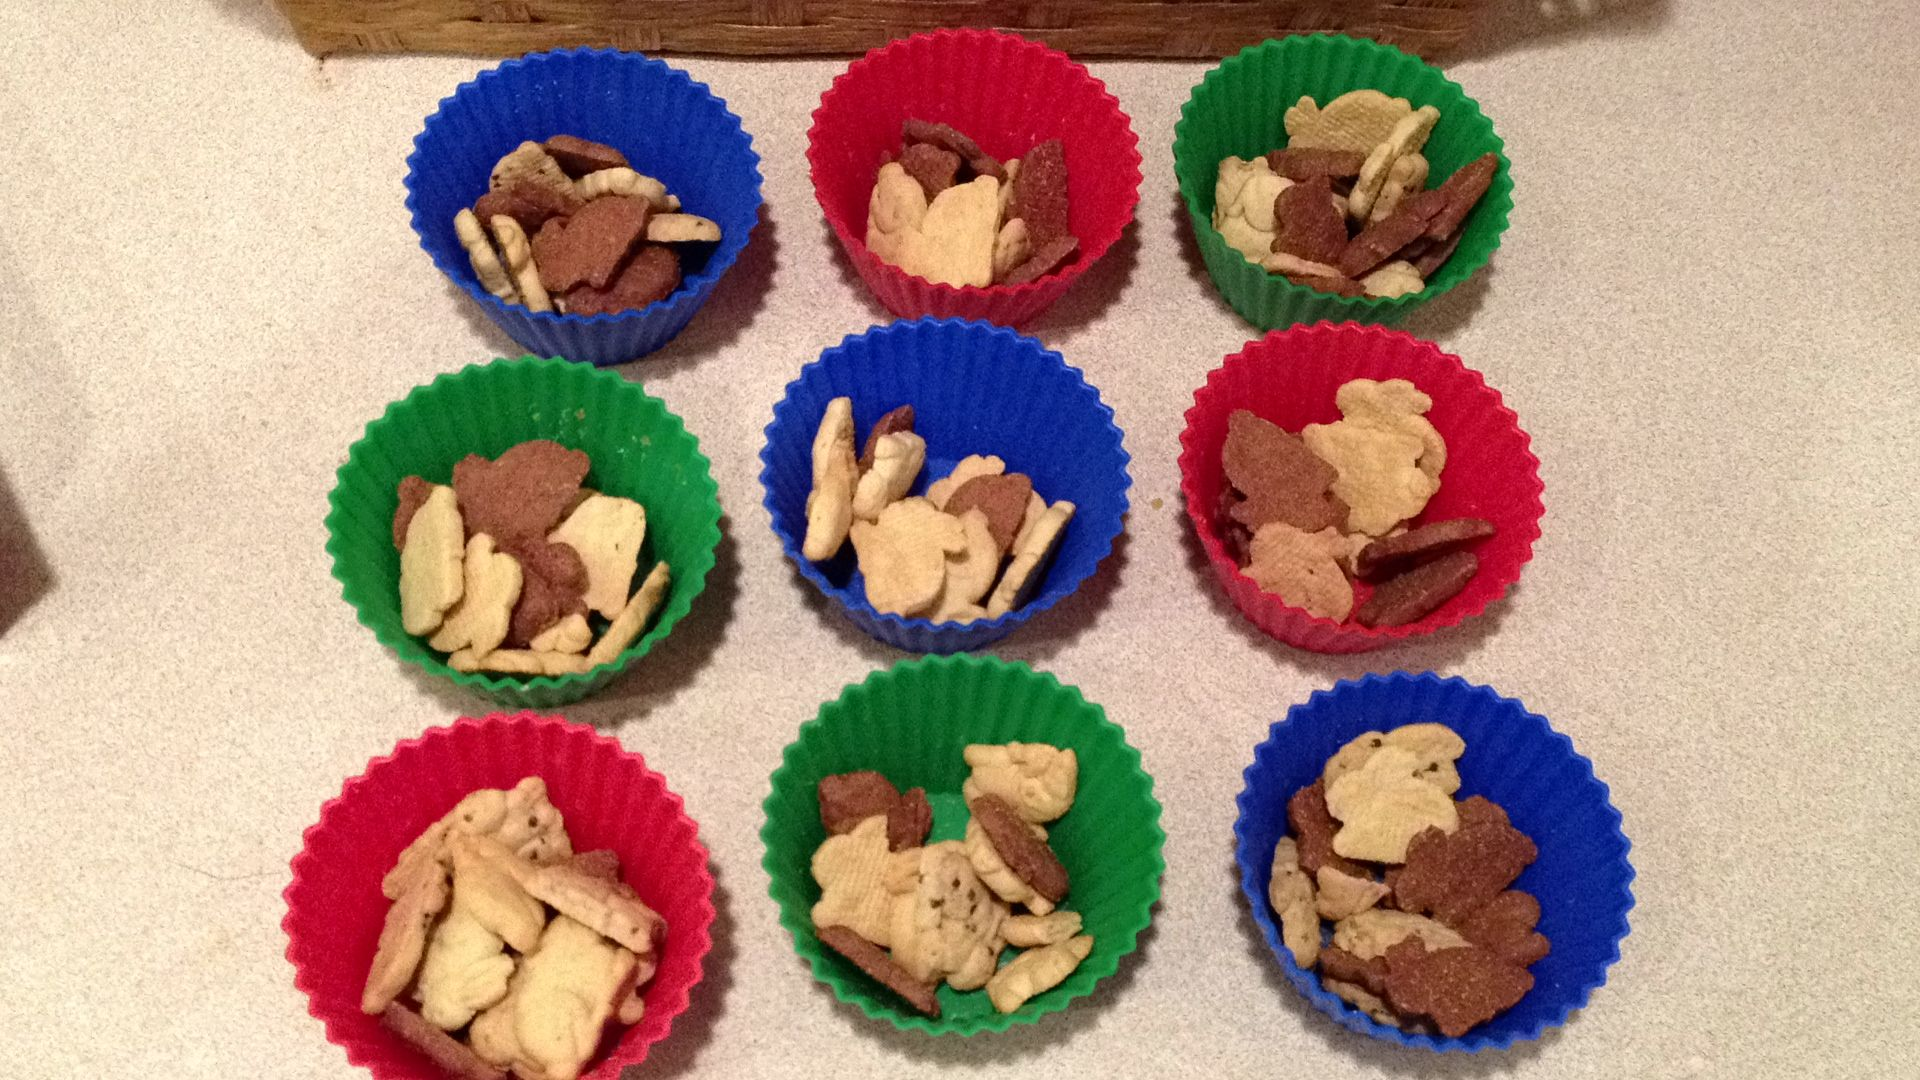 Toddler Snacks In Reusable Muffin Cups